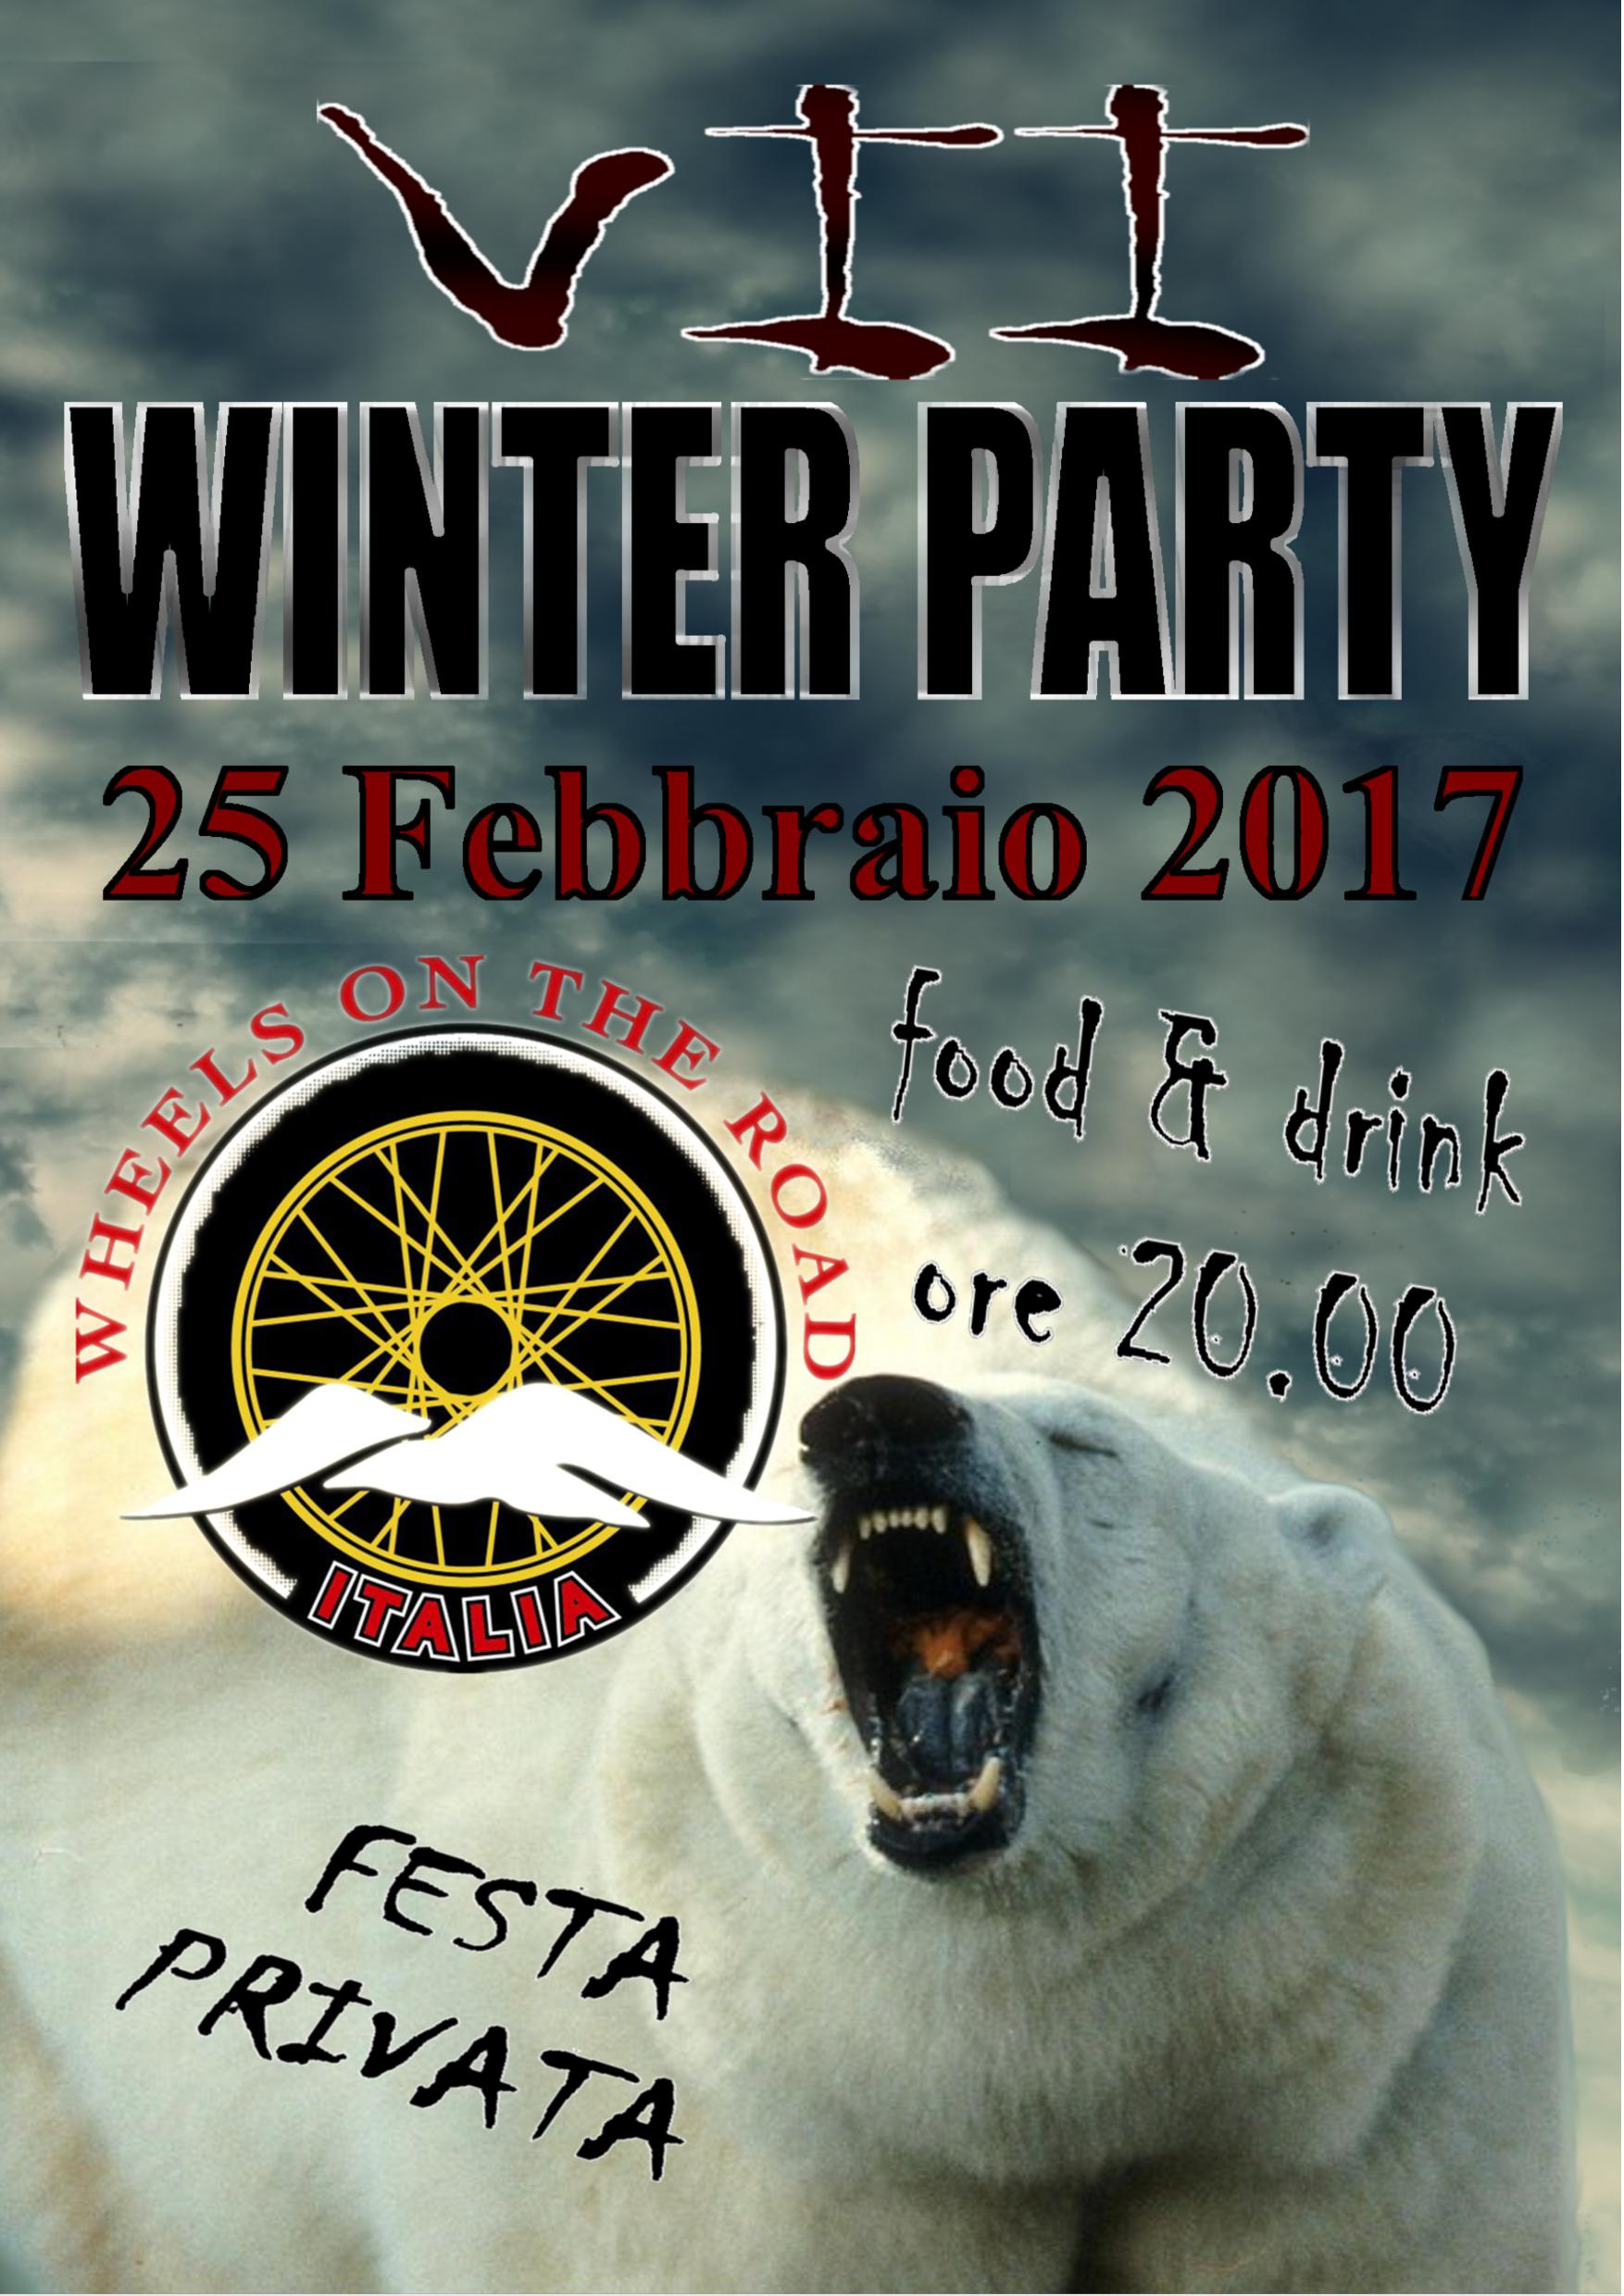 VII° Winter Party